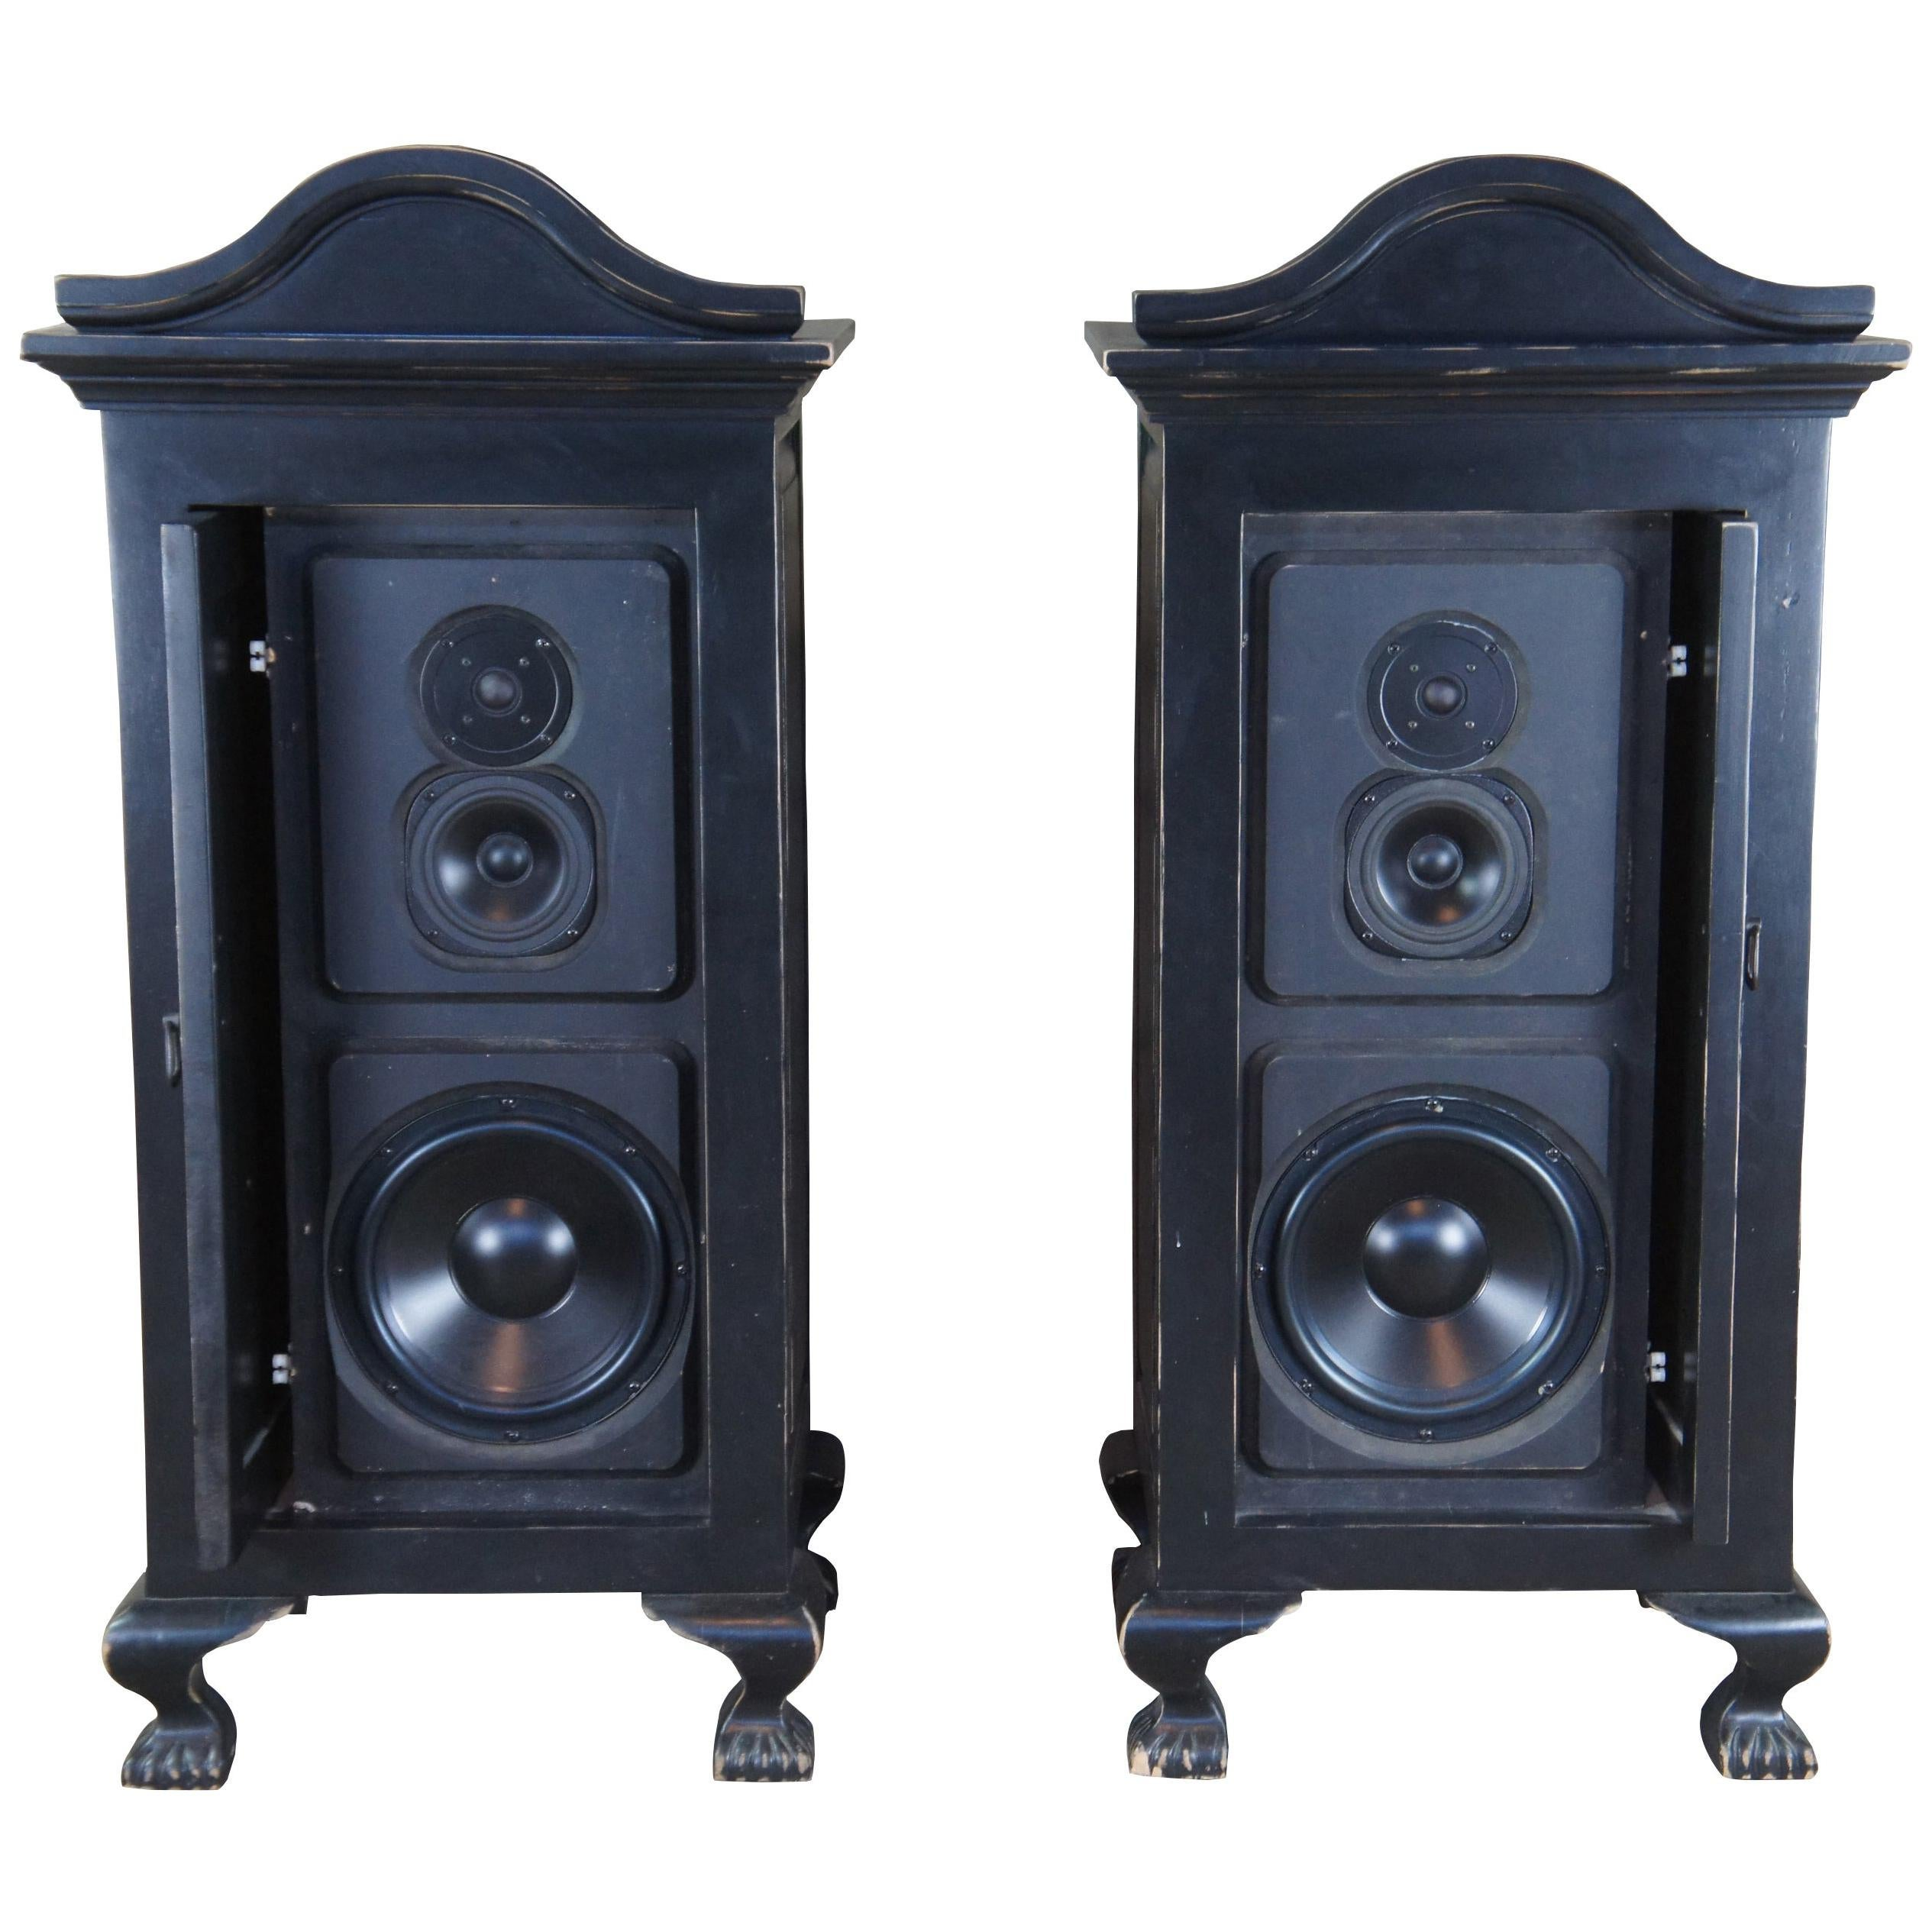 2 Vintage Innovative Audio Black French Country Cabinet Speaker Tower Pair